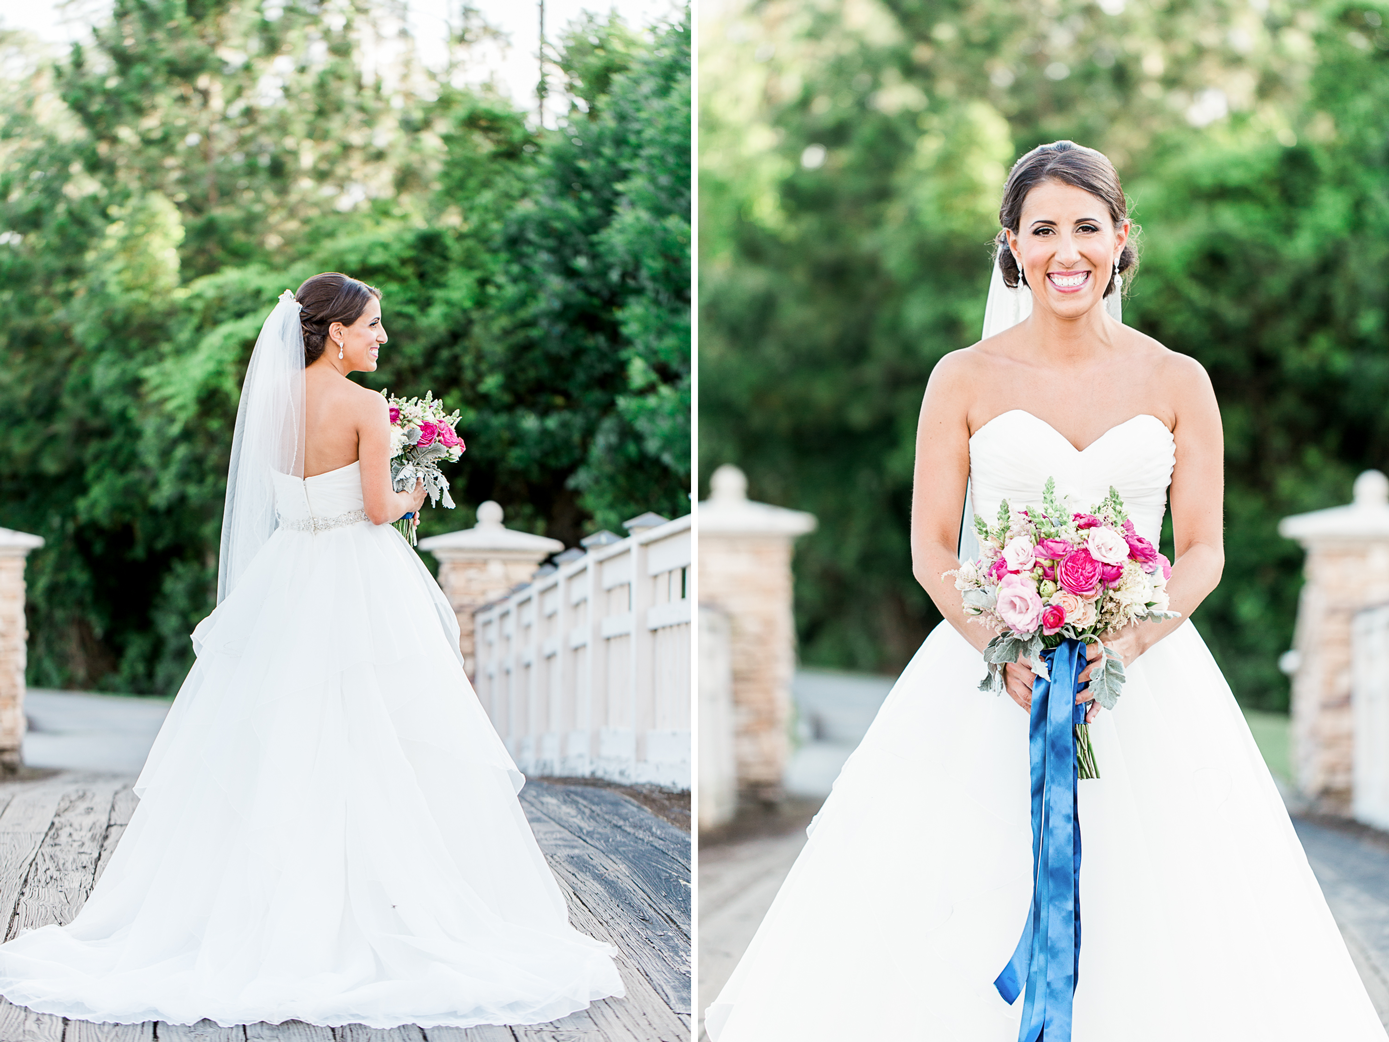 stunning bride in her Love Bridal Boutique wedding dress and   flowers by happily ever after floral